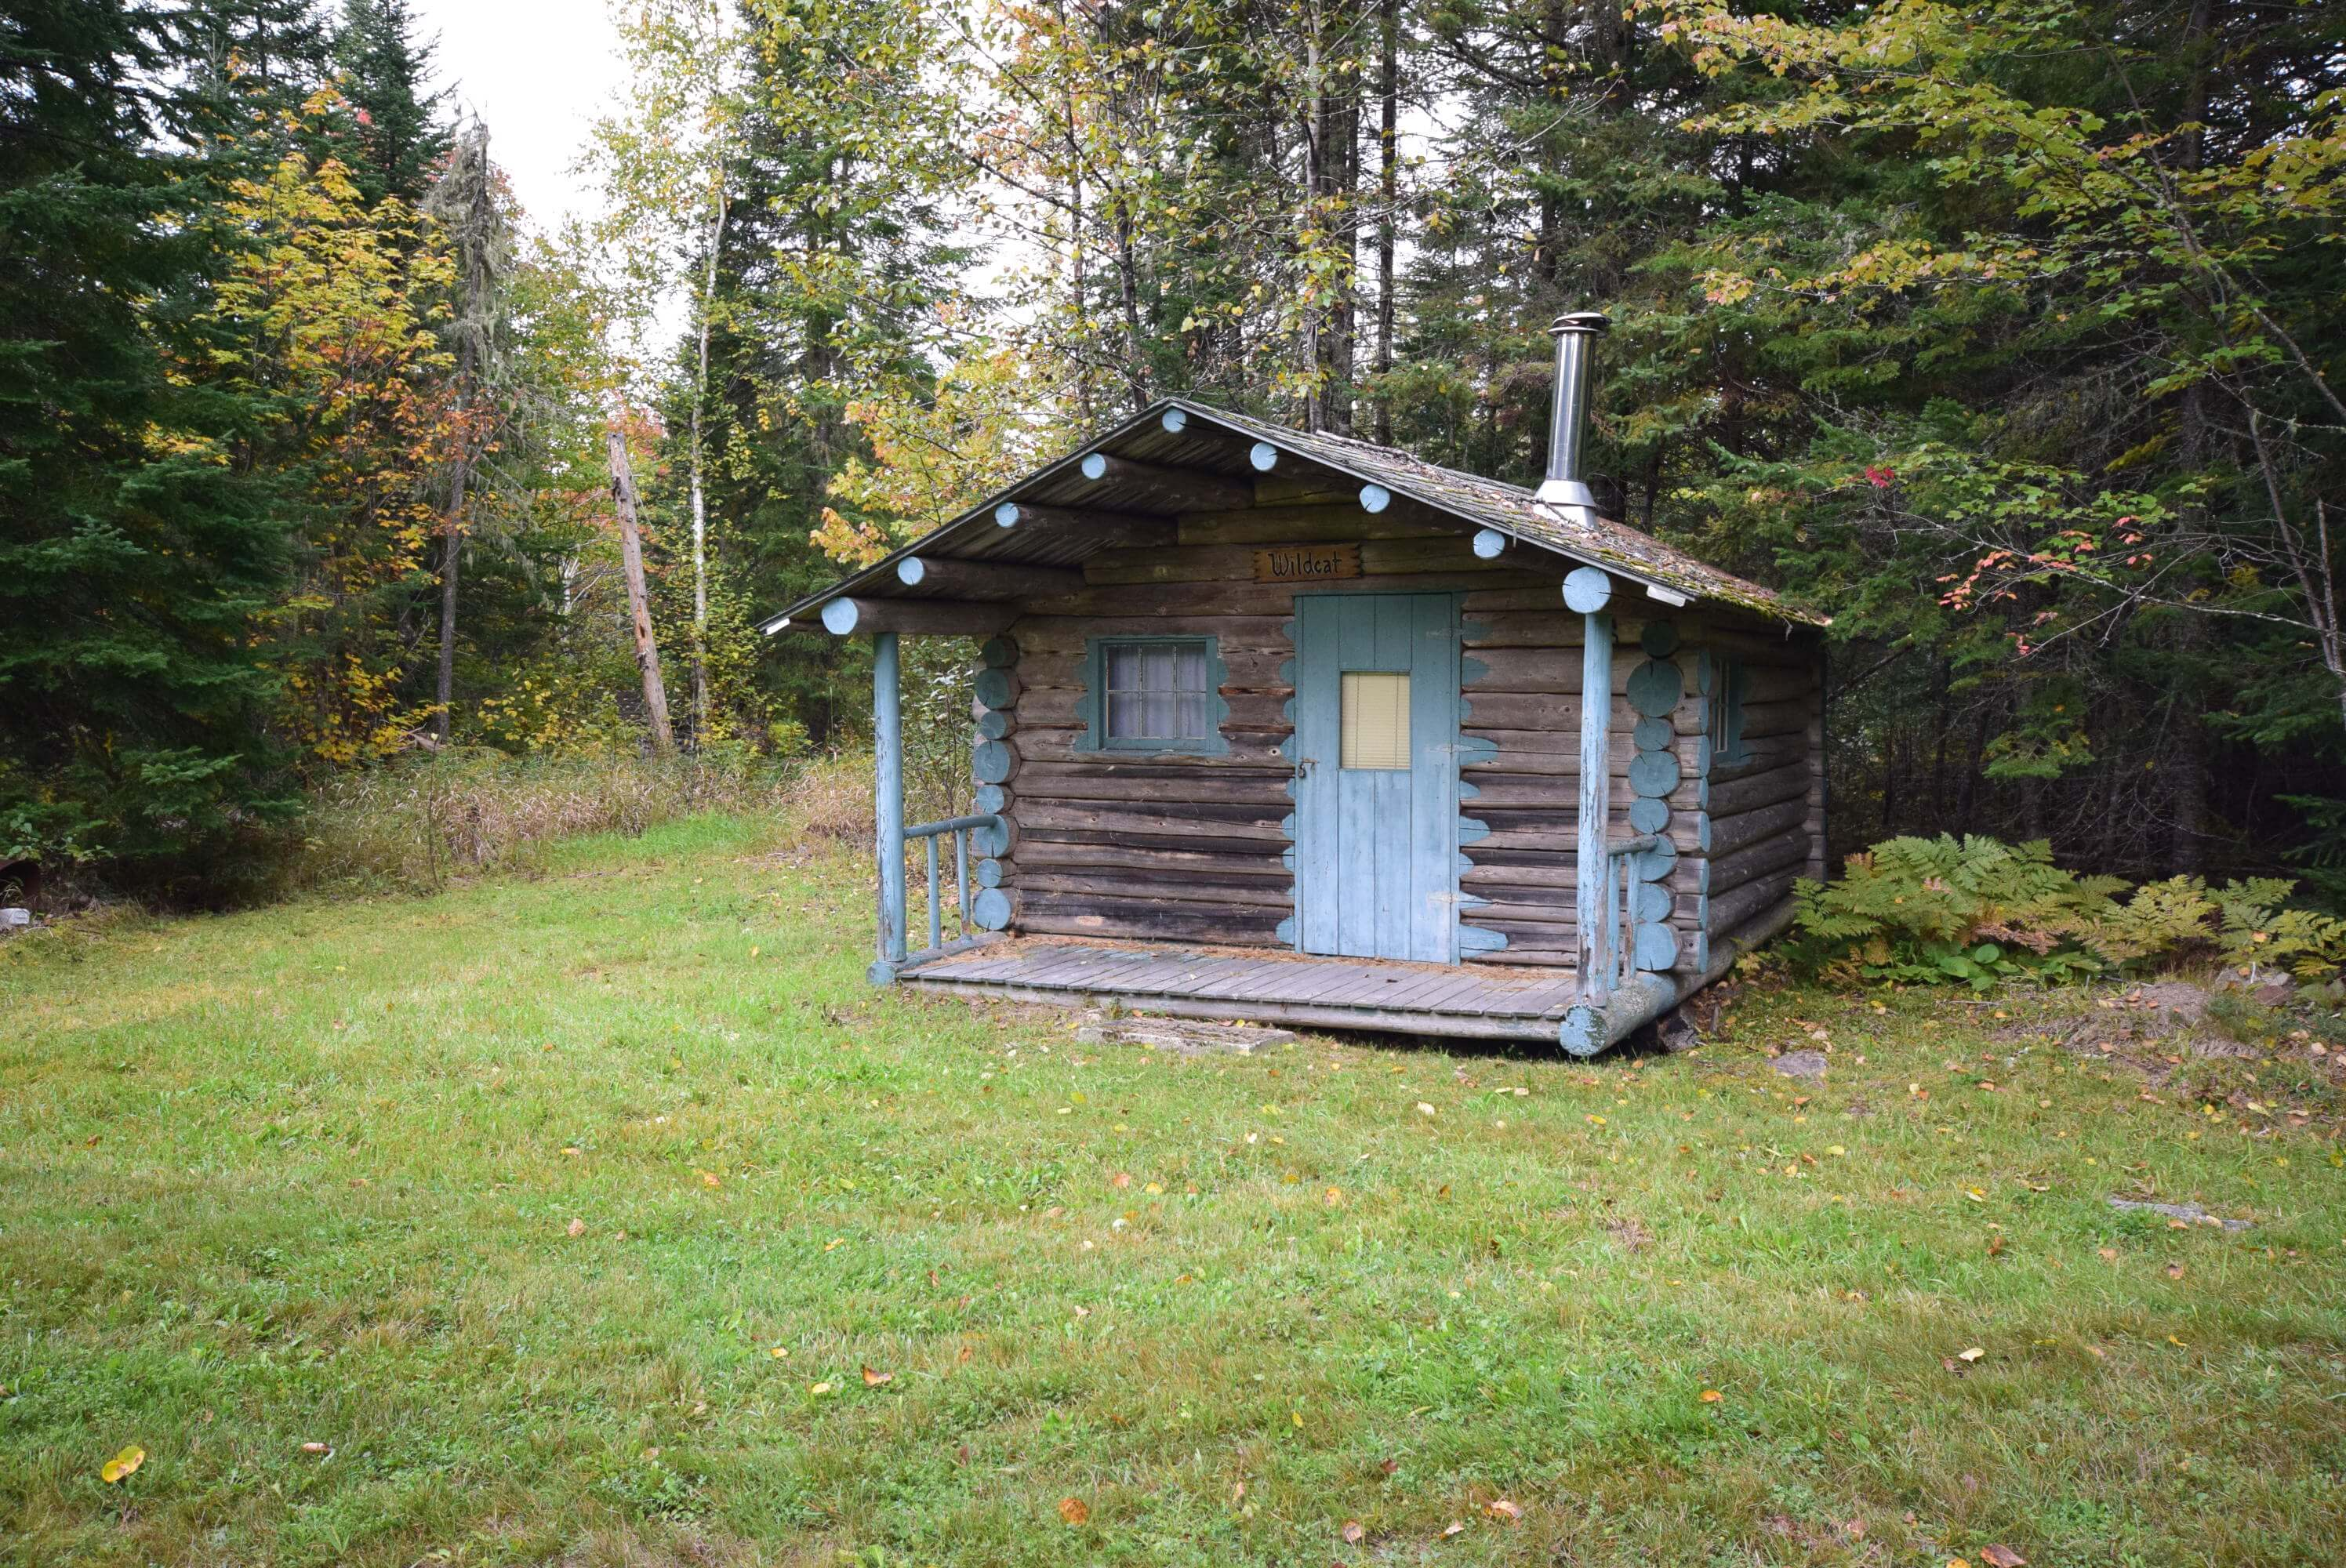 rideout maine exterior waterfront us about cabins sale s rustic lodge